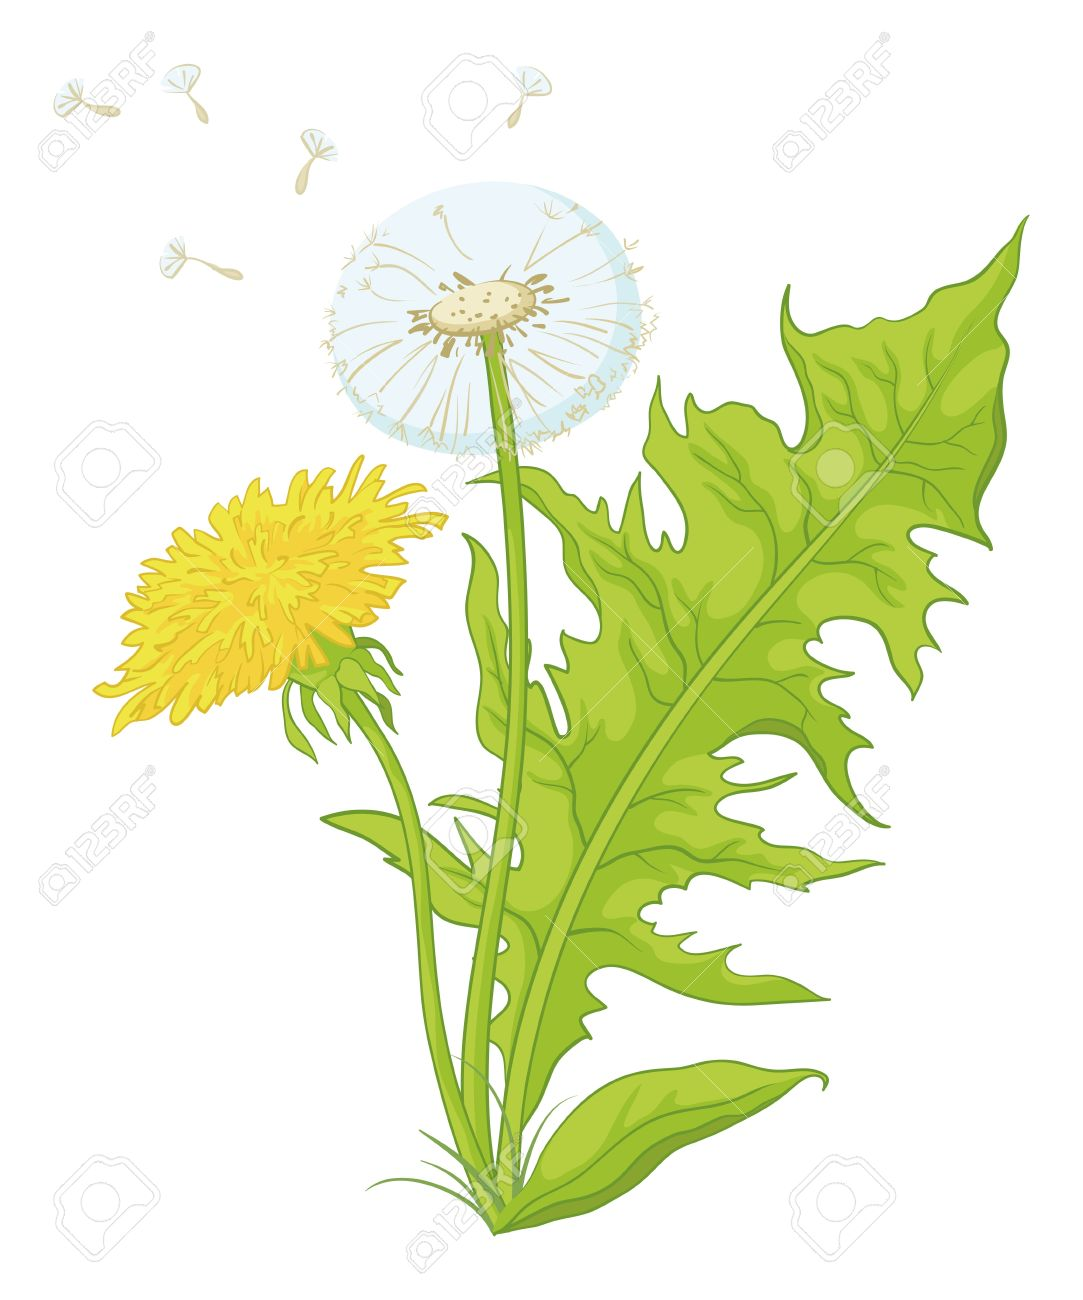 Flowers Dandelions With Green Leaves, Yellow, And With Seeds.